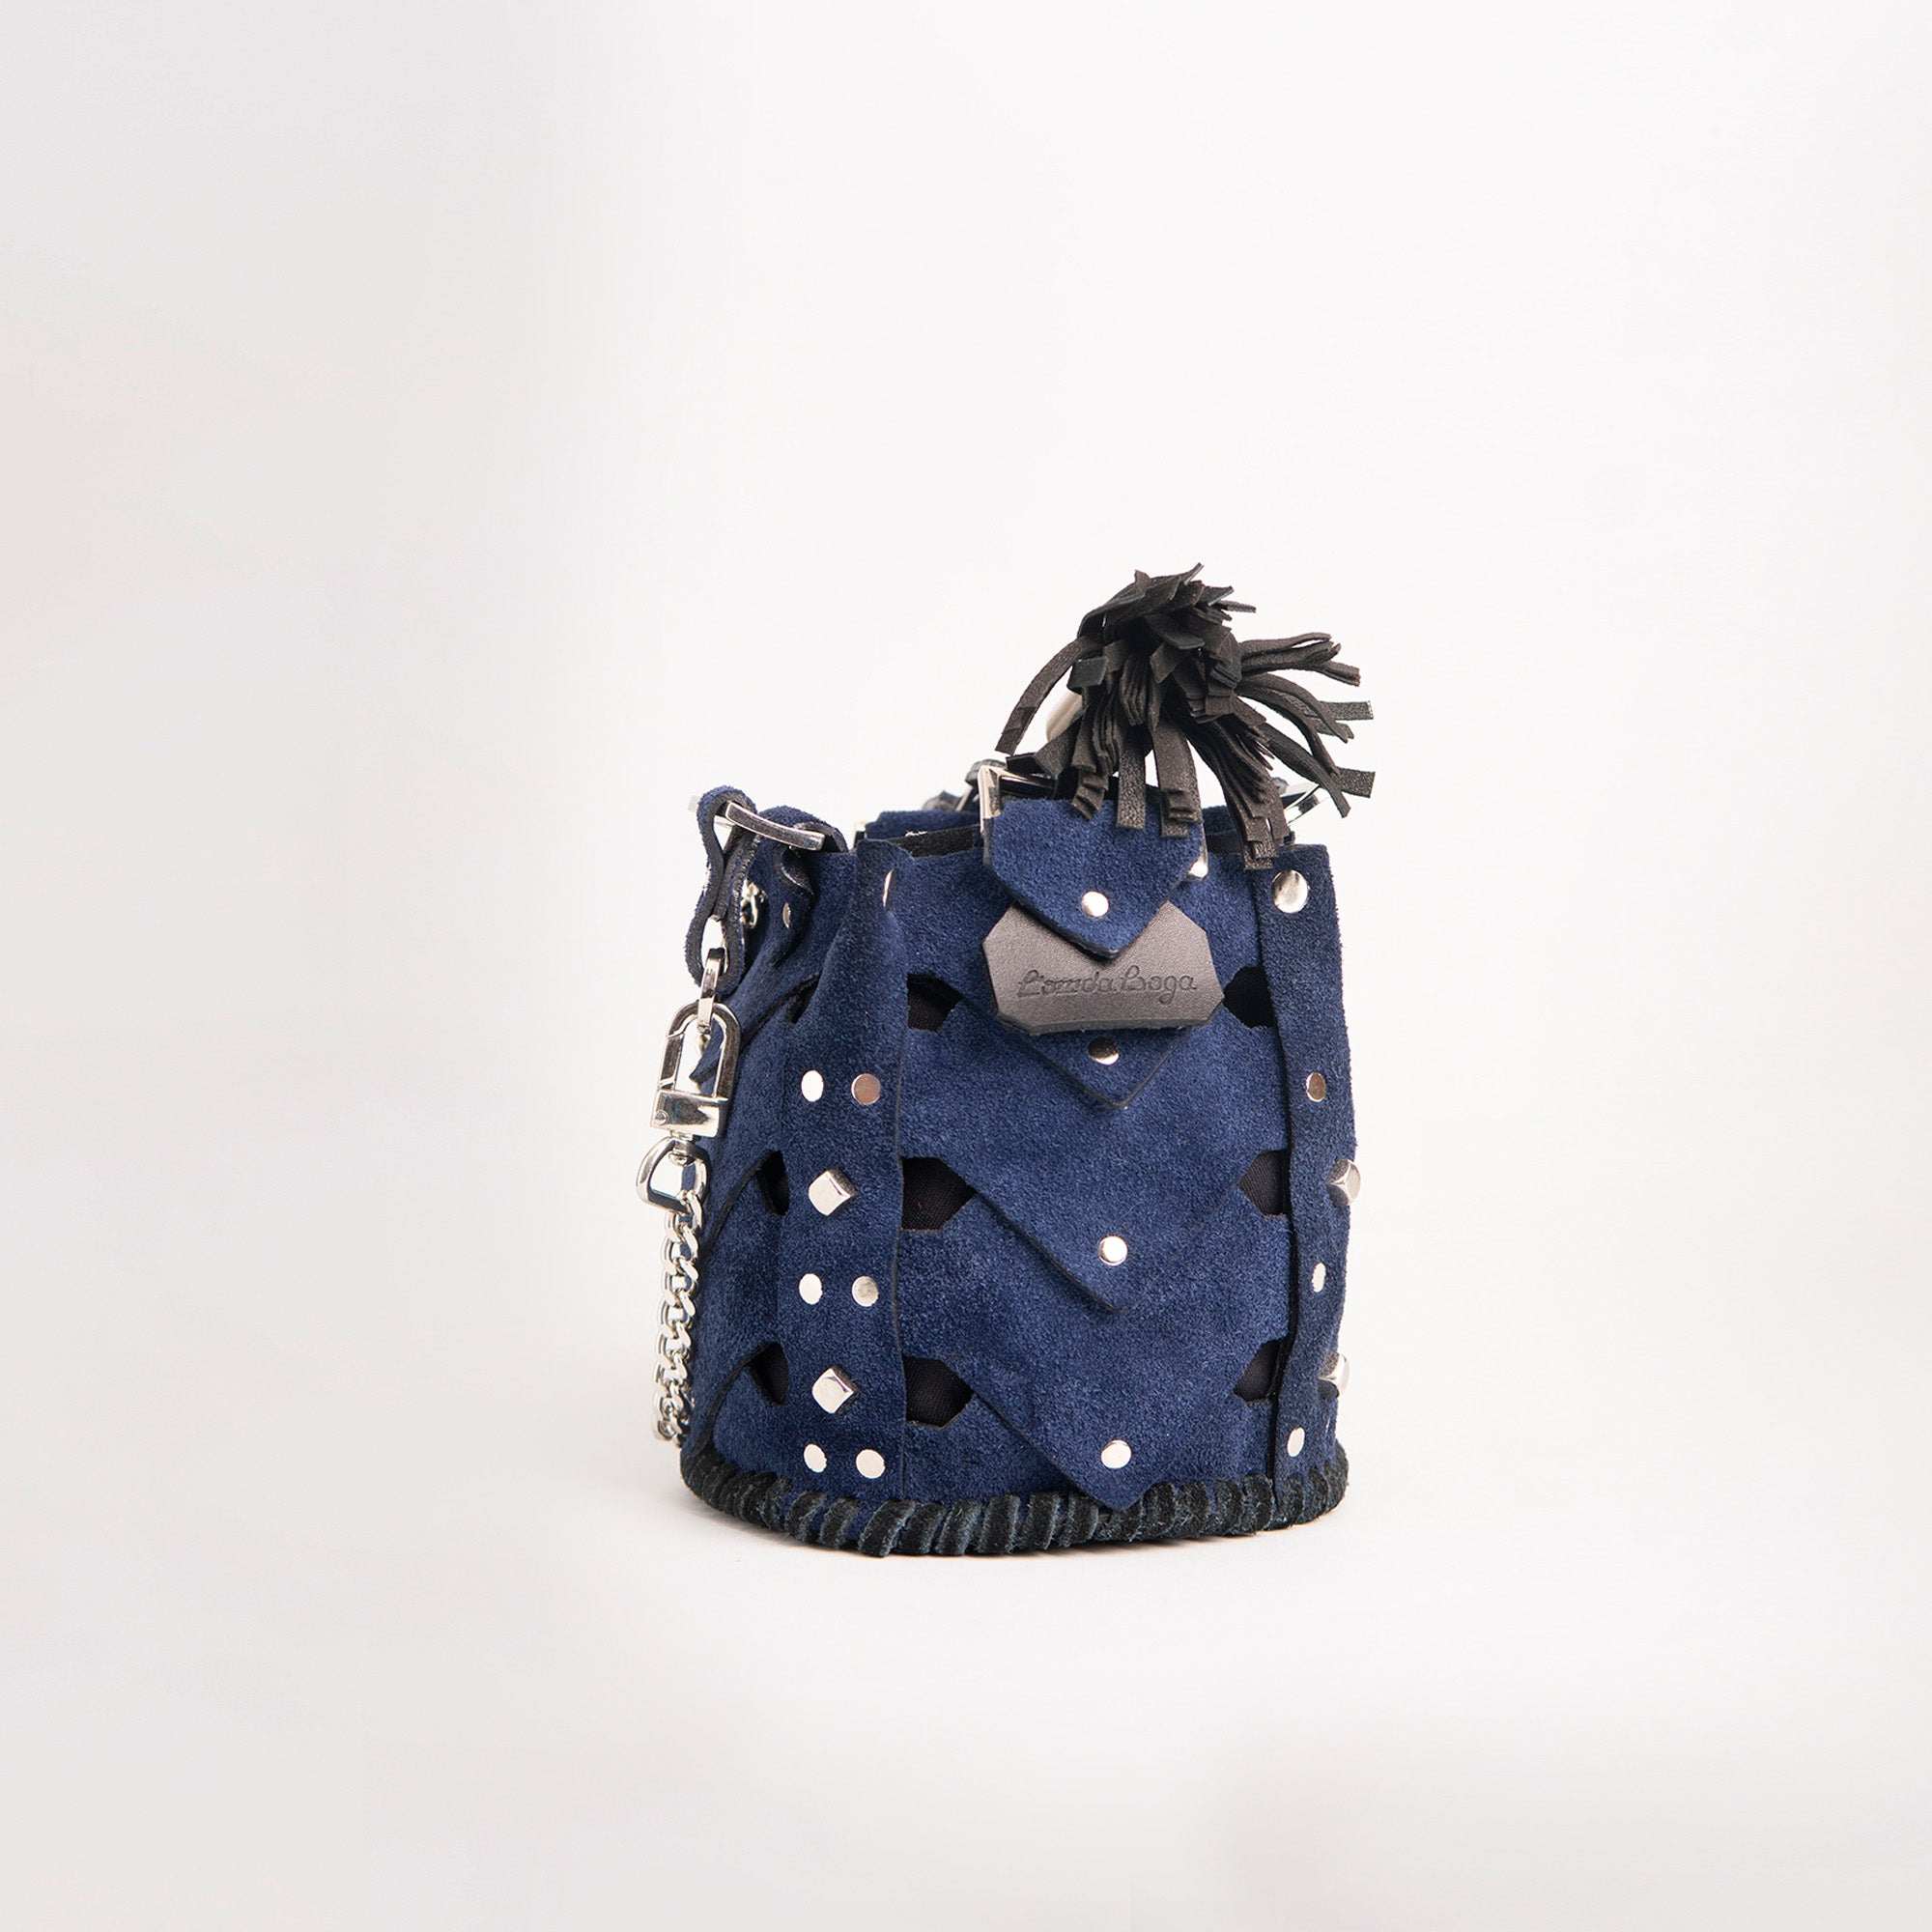 Vertebrae Mini, Navy Blue on Black